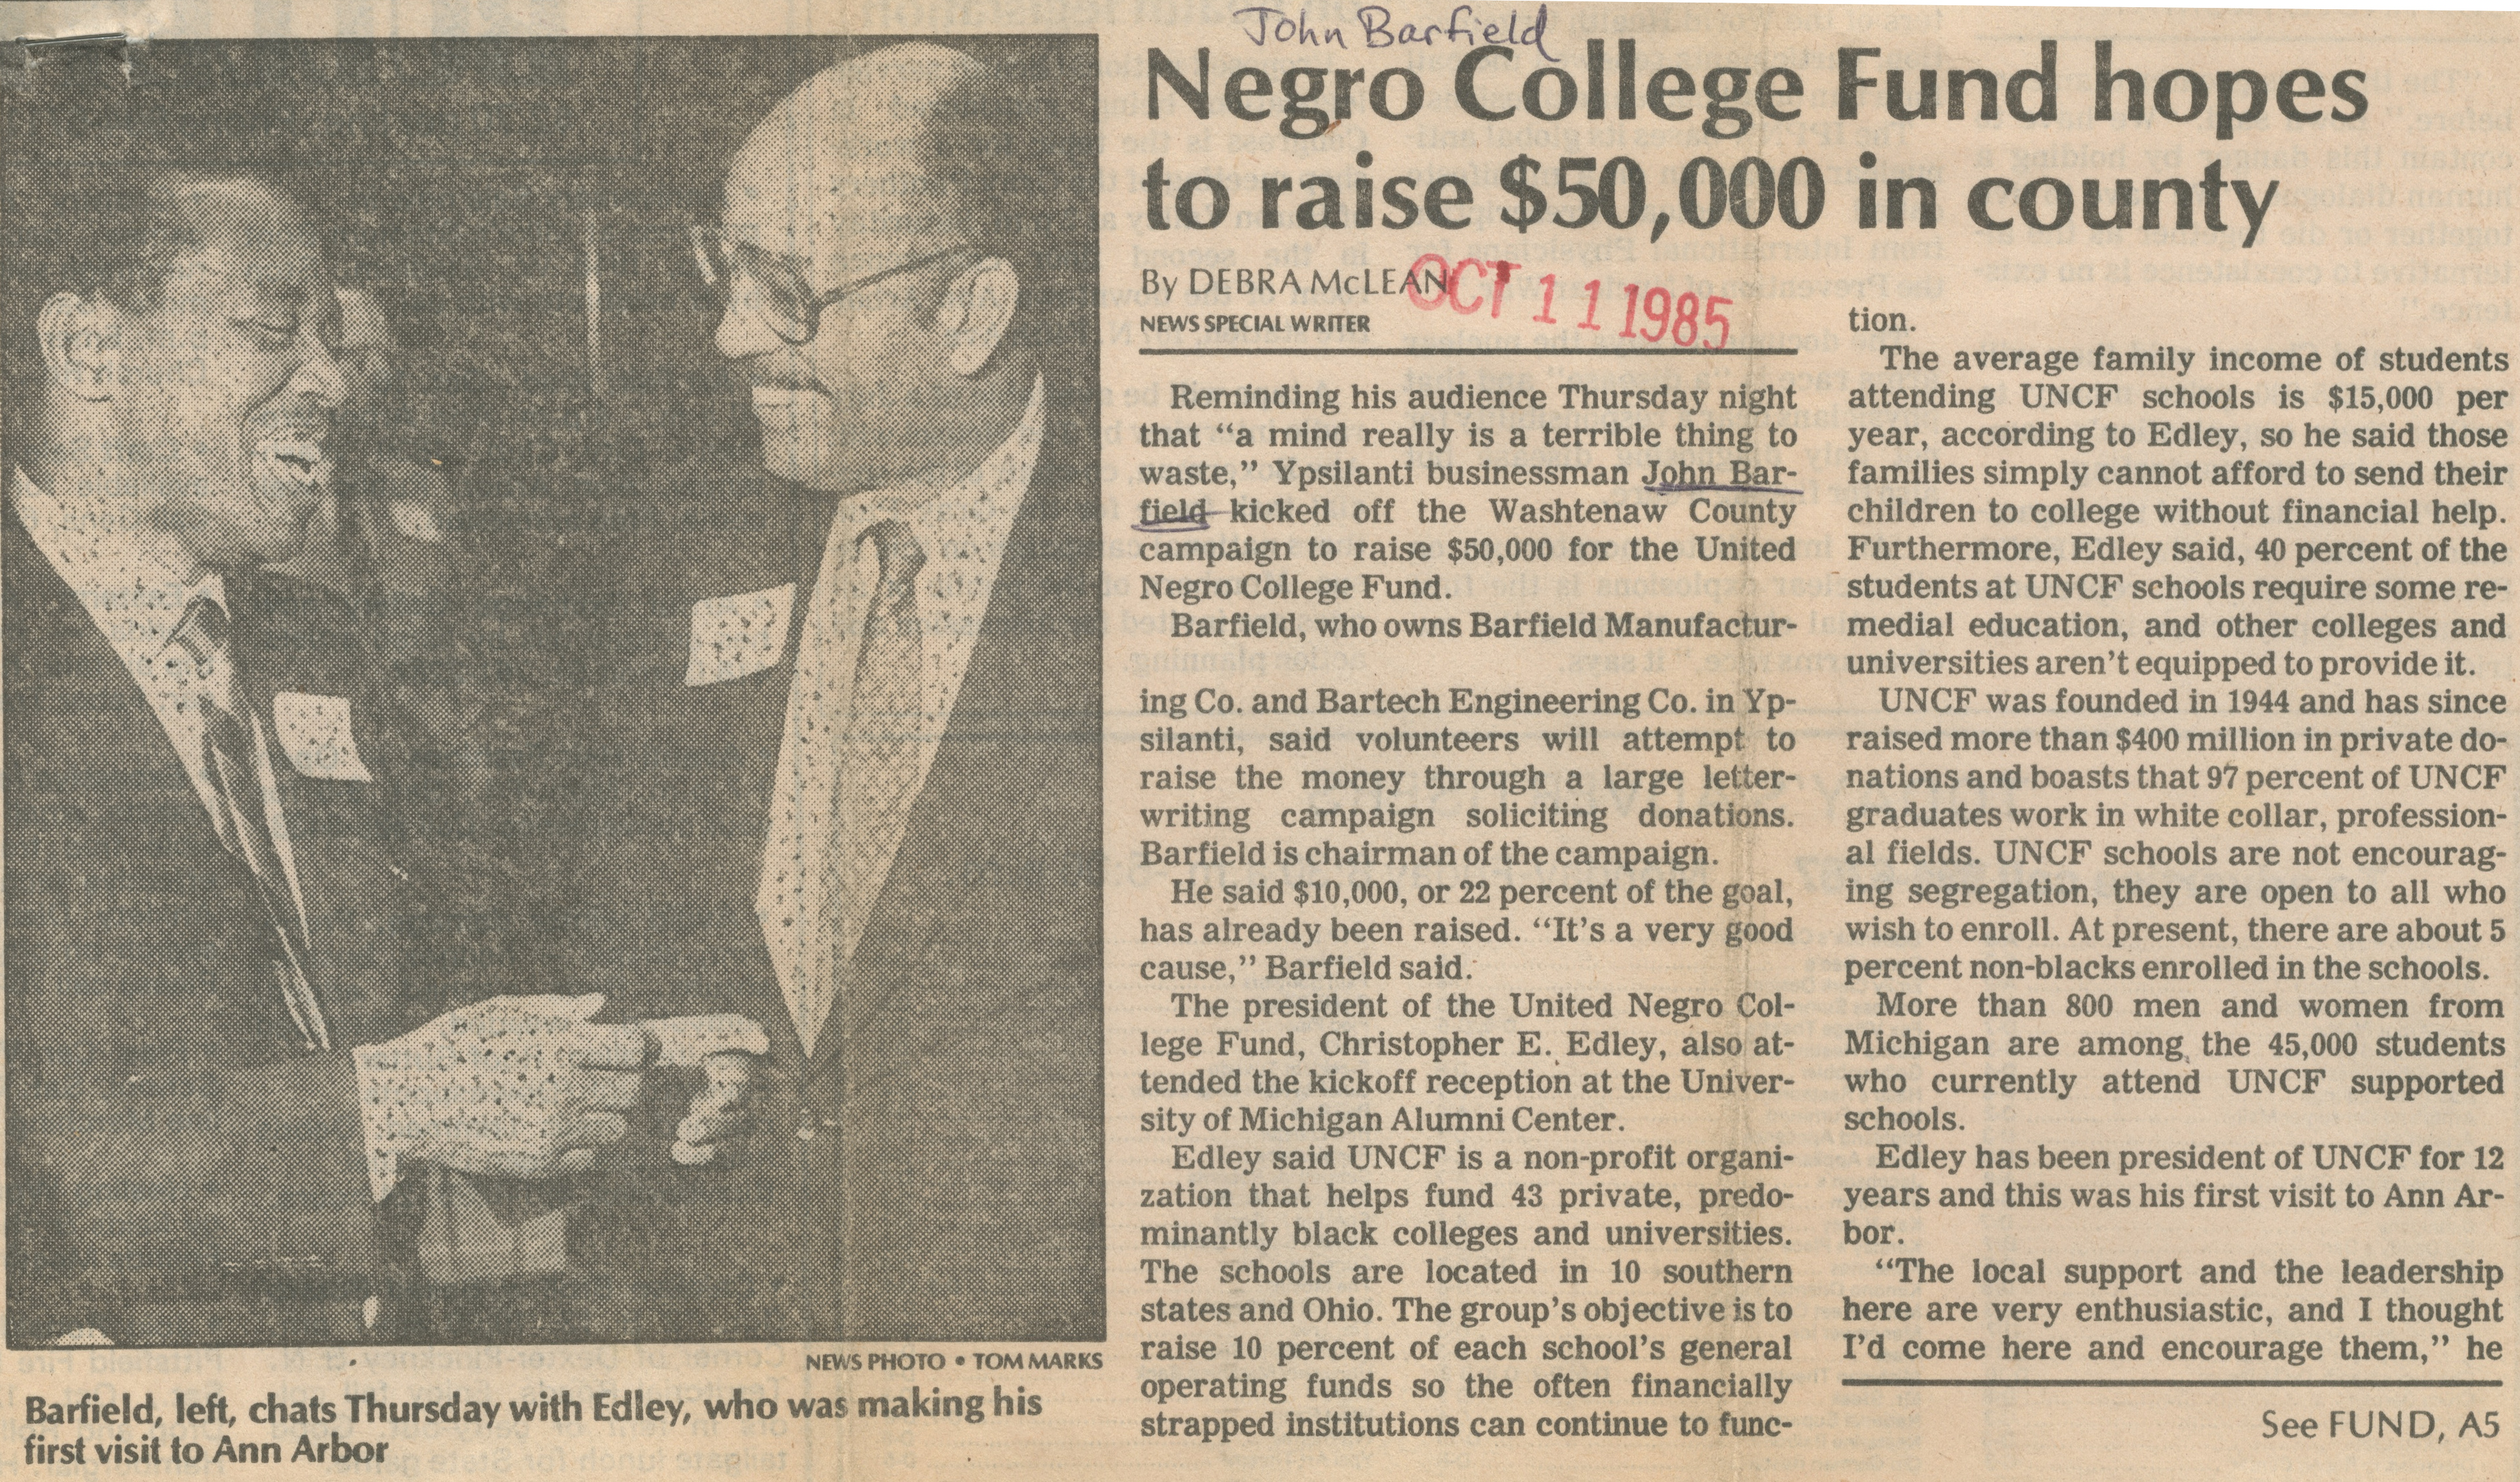 Negro College Fund Hopes To Raise $50,000 In County image